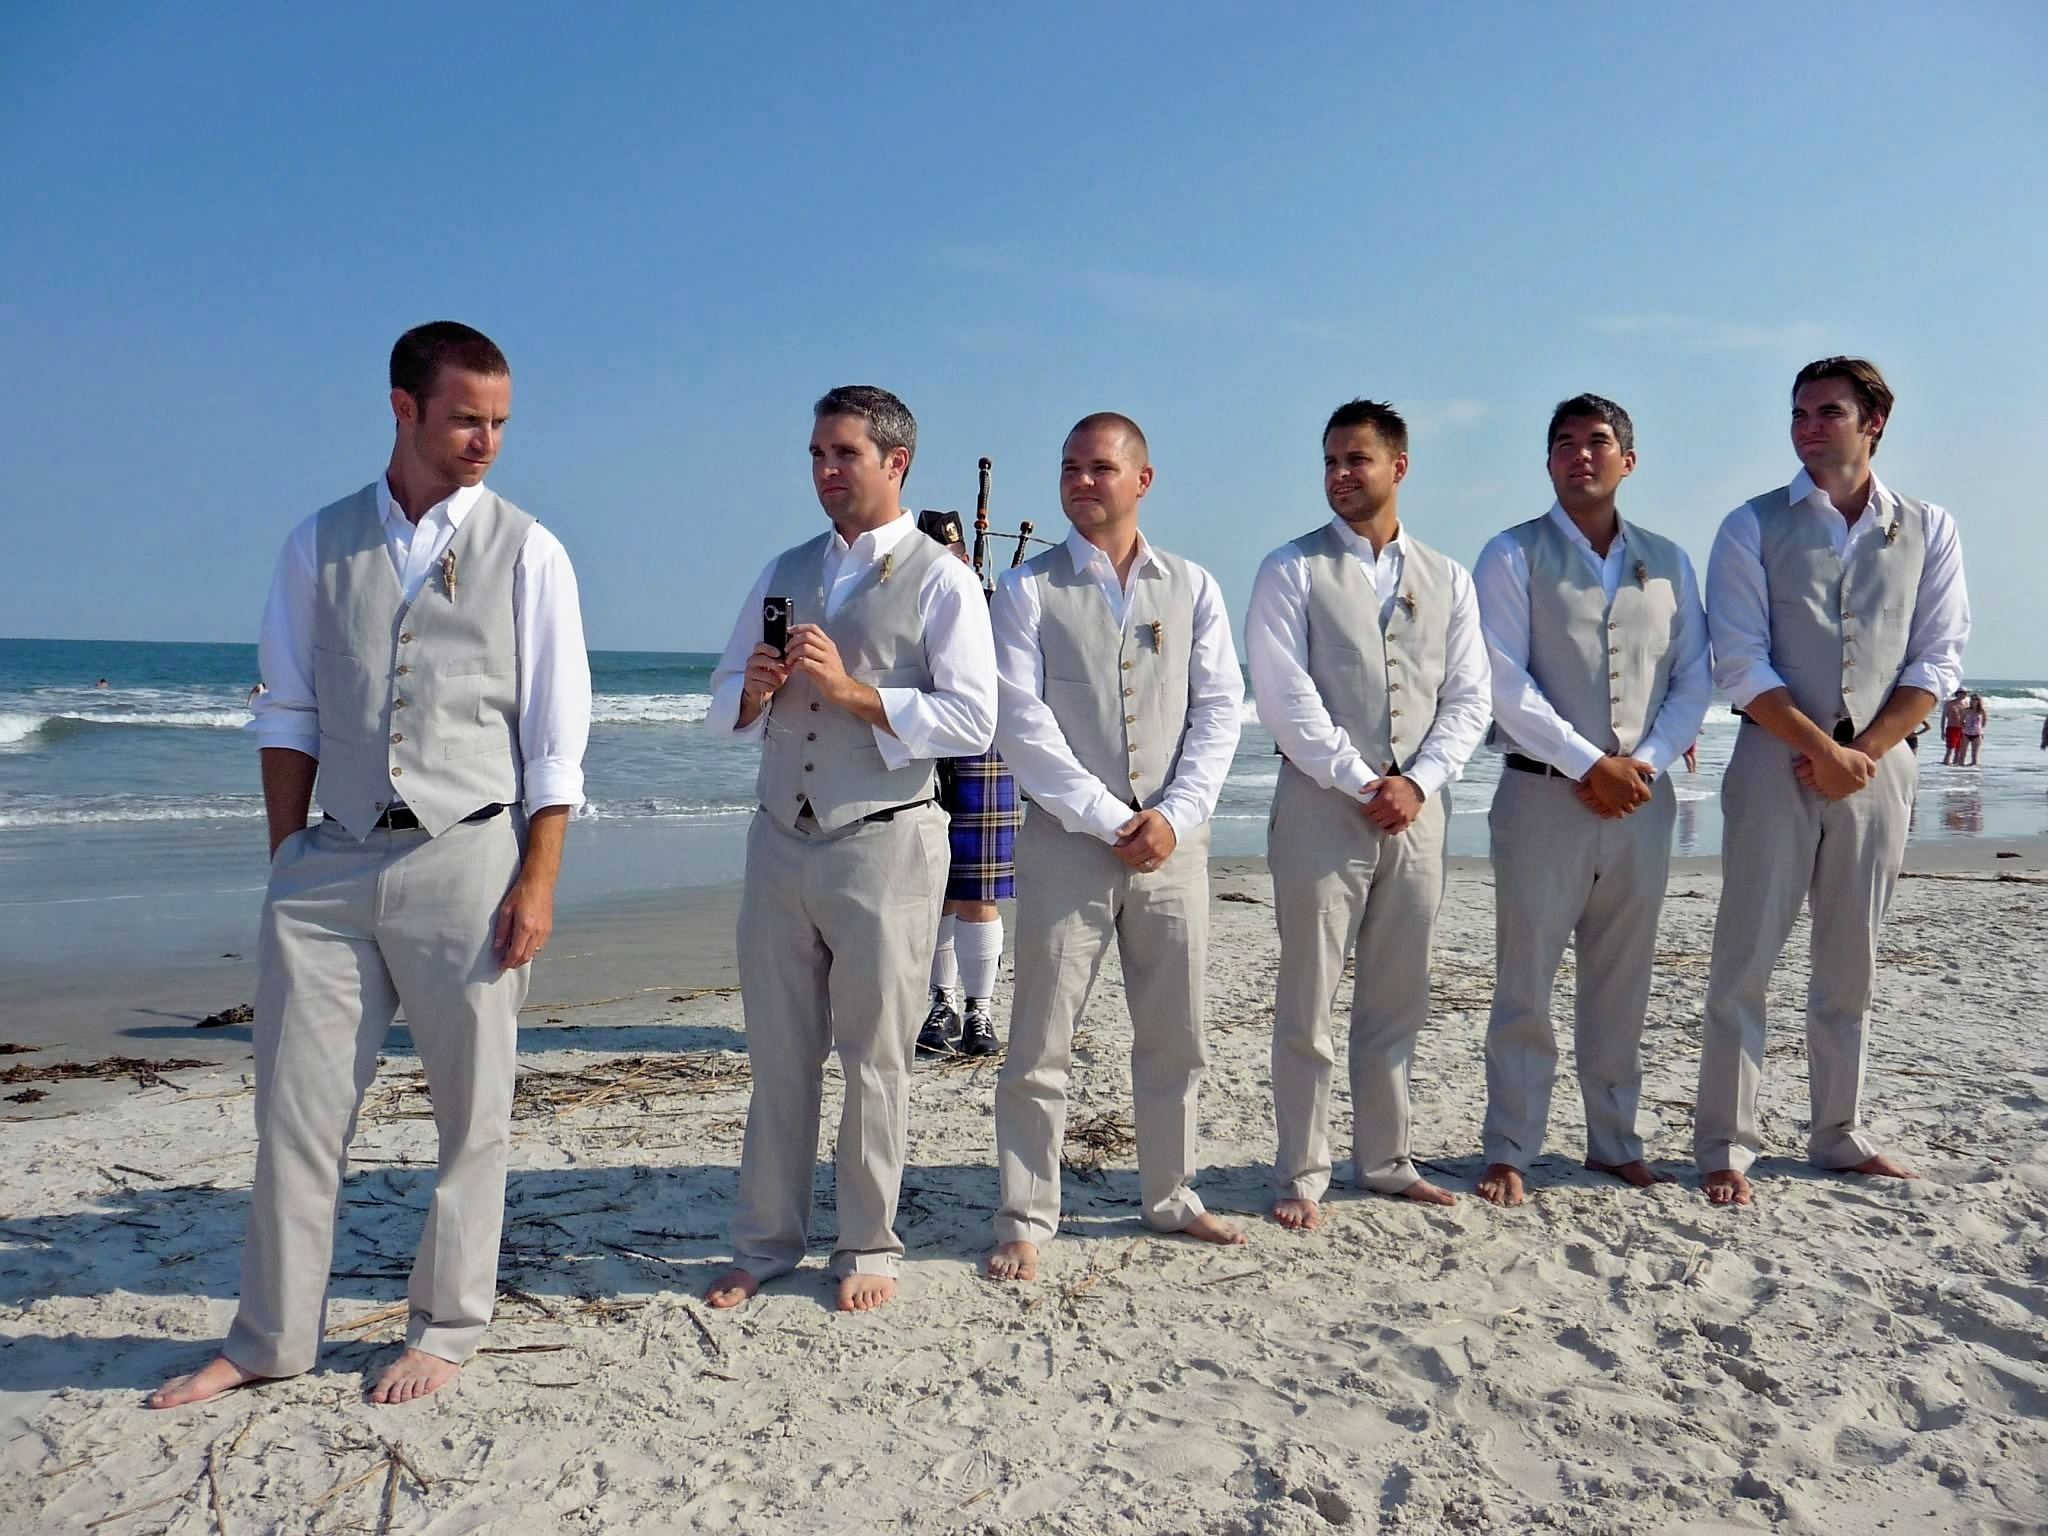 Wedding Destination Hilton Head South Carolina  the